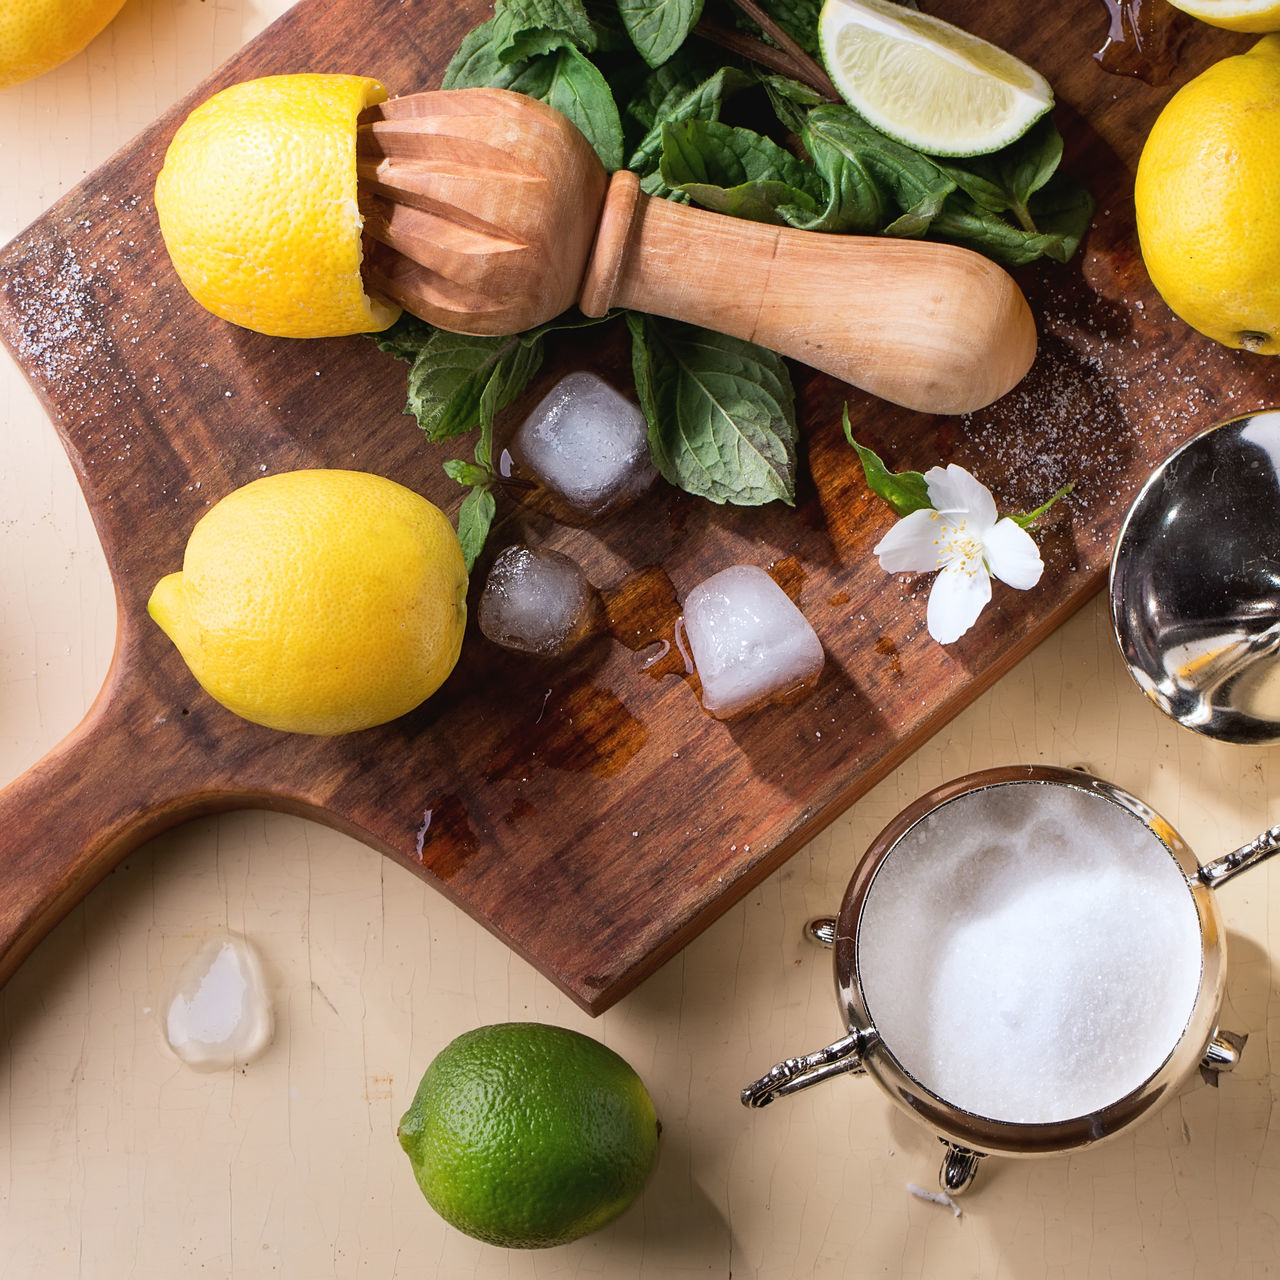 Heap of whole and sliced lemons, limes and mint with citrus reamer and ice cubes on wooden cutting board over wooden background. Rustic sun light. Top view. Assortment Bright Citrus Fruit Cutting Board Food Food And Drink Fresh Fruits Ice Cubes Ingredients Jasmine Flower Lemon Lemonade Lime Mint Refreshment Sliced Sugar Summer Top View Variety Vitamin Whole Wooden Background Yellow